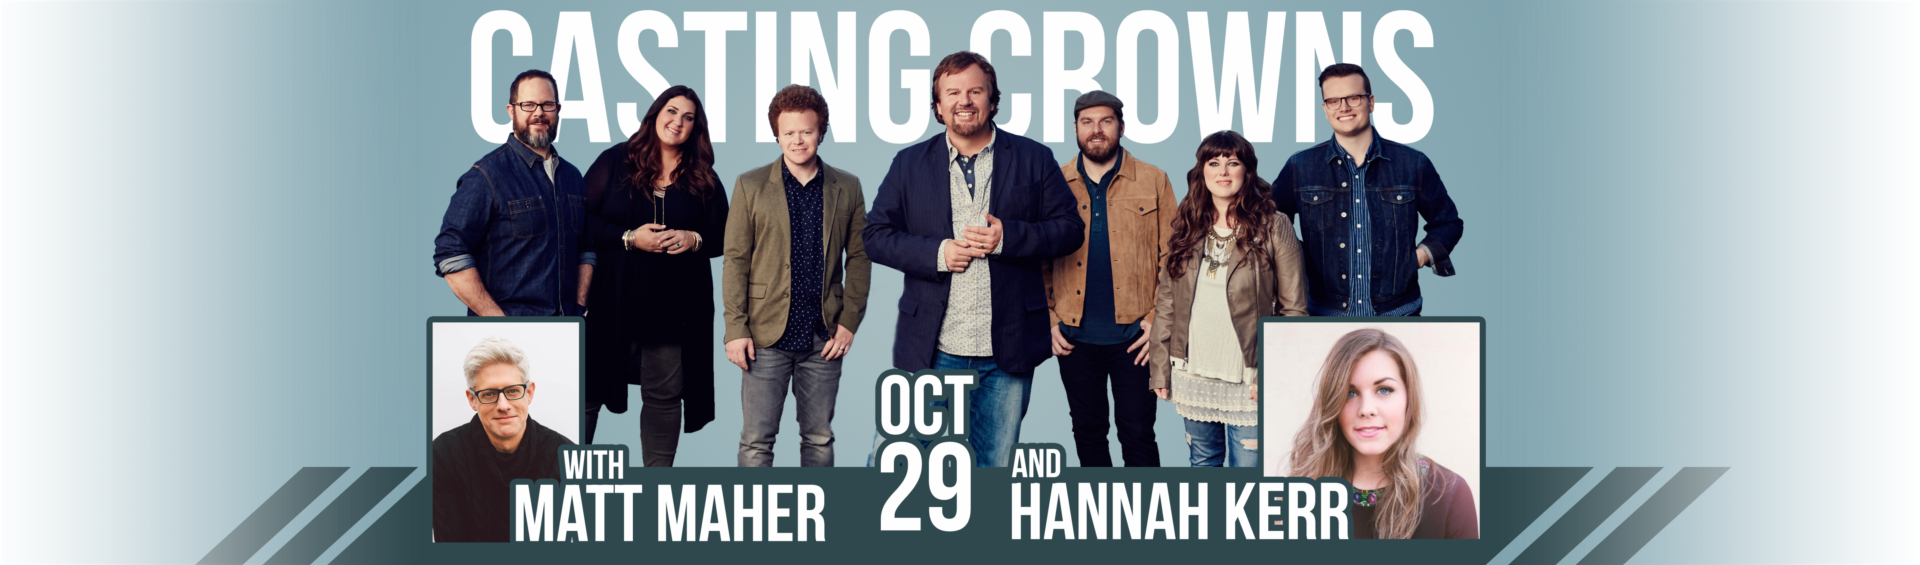 Casting Crowns-914.png